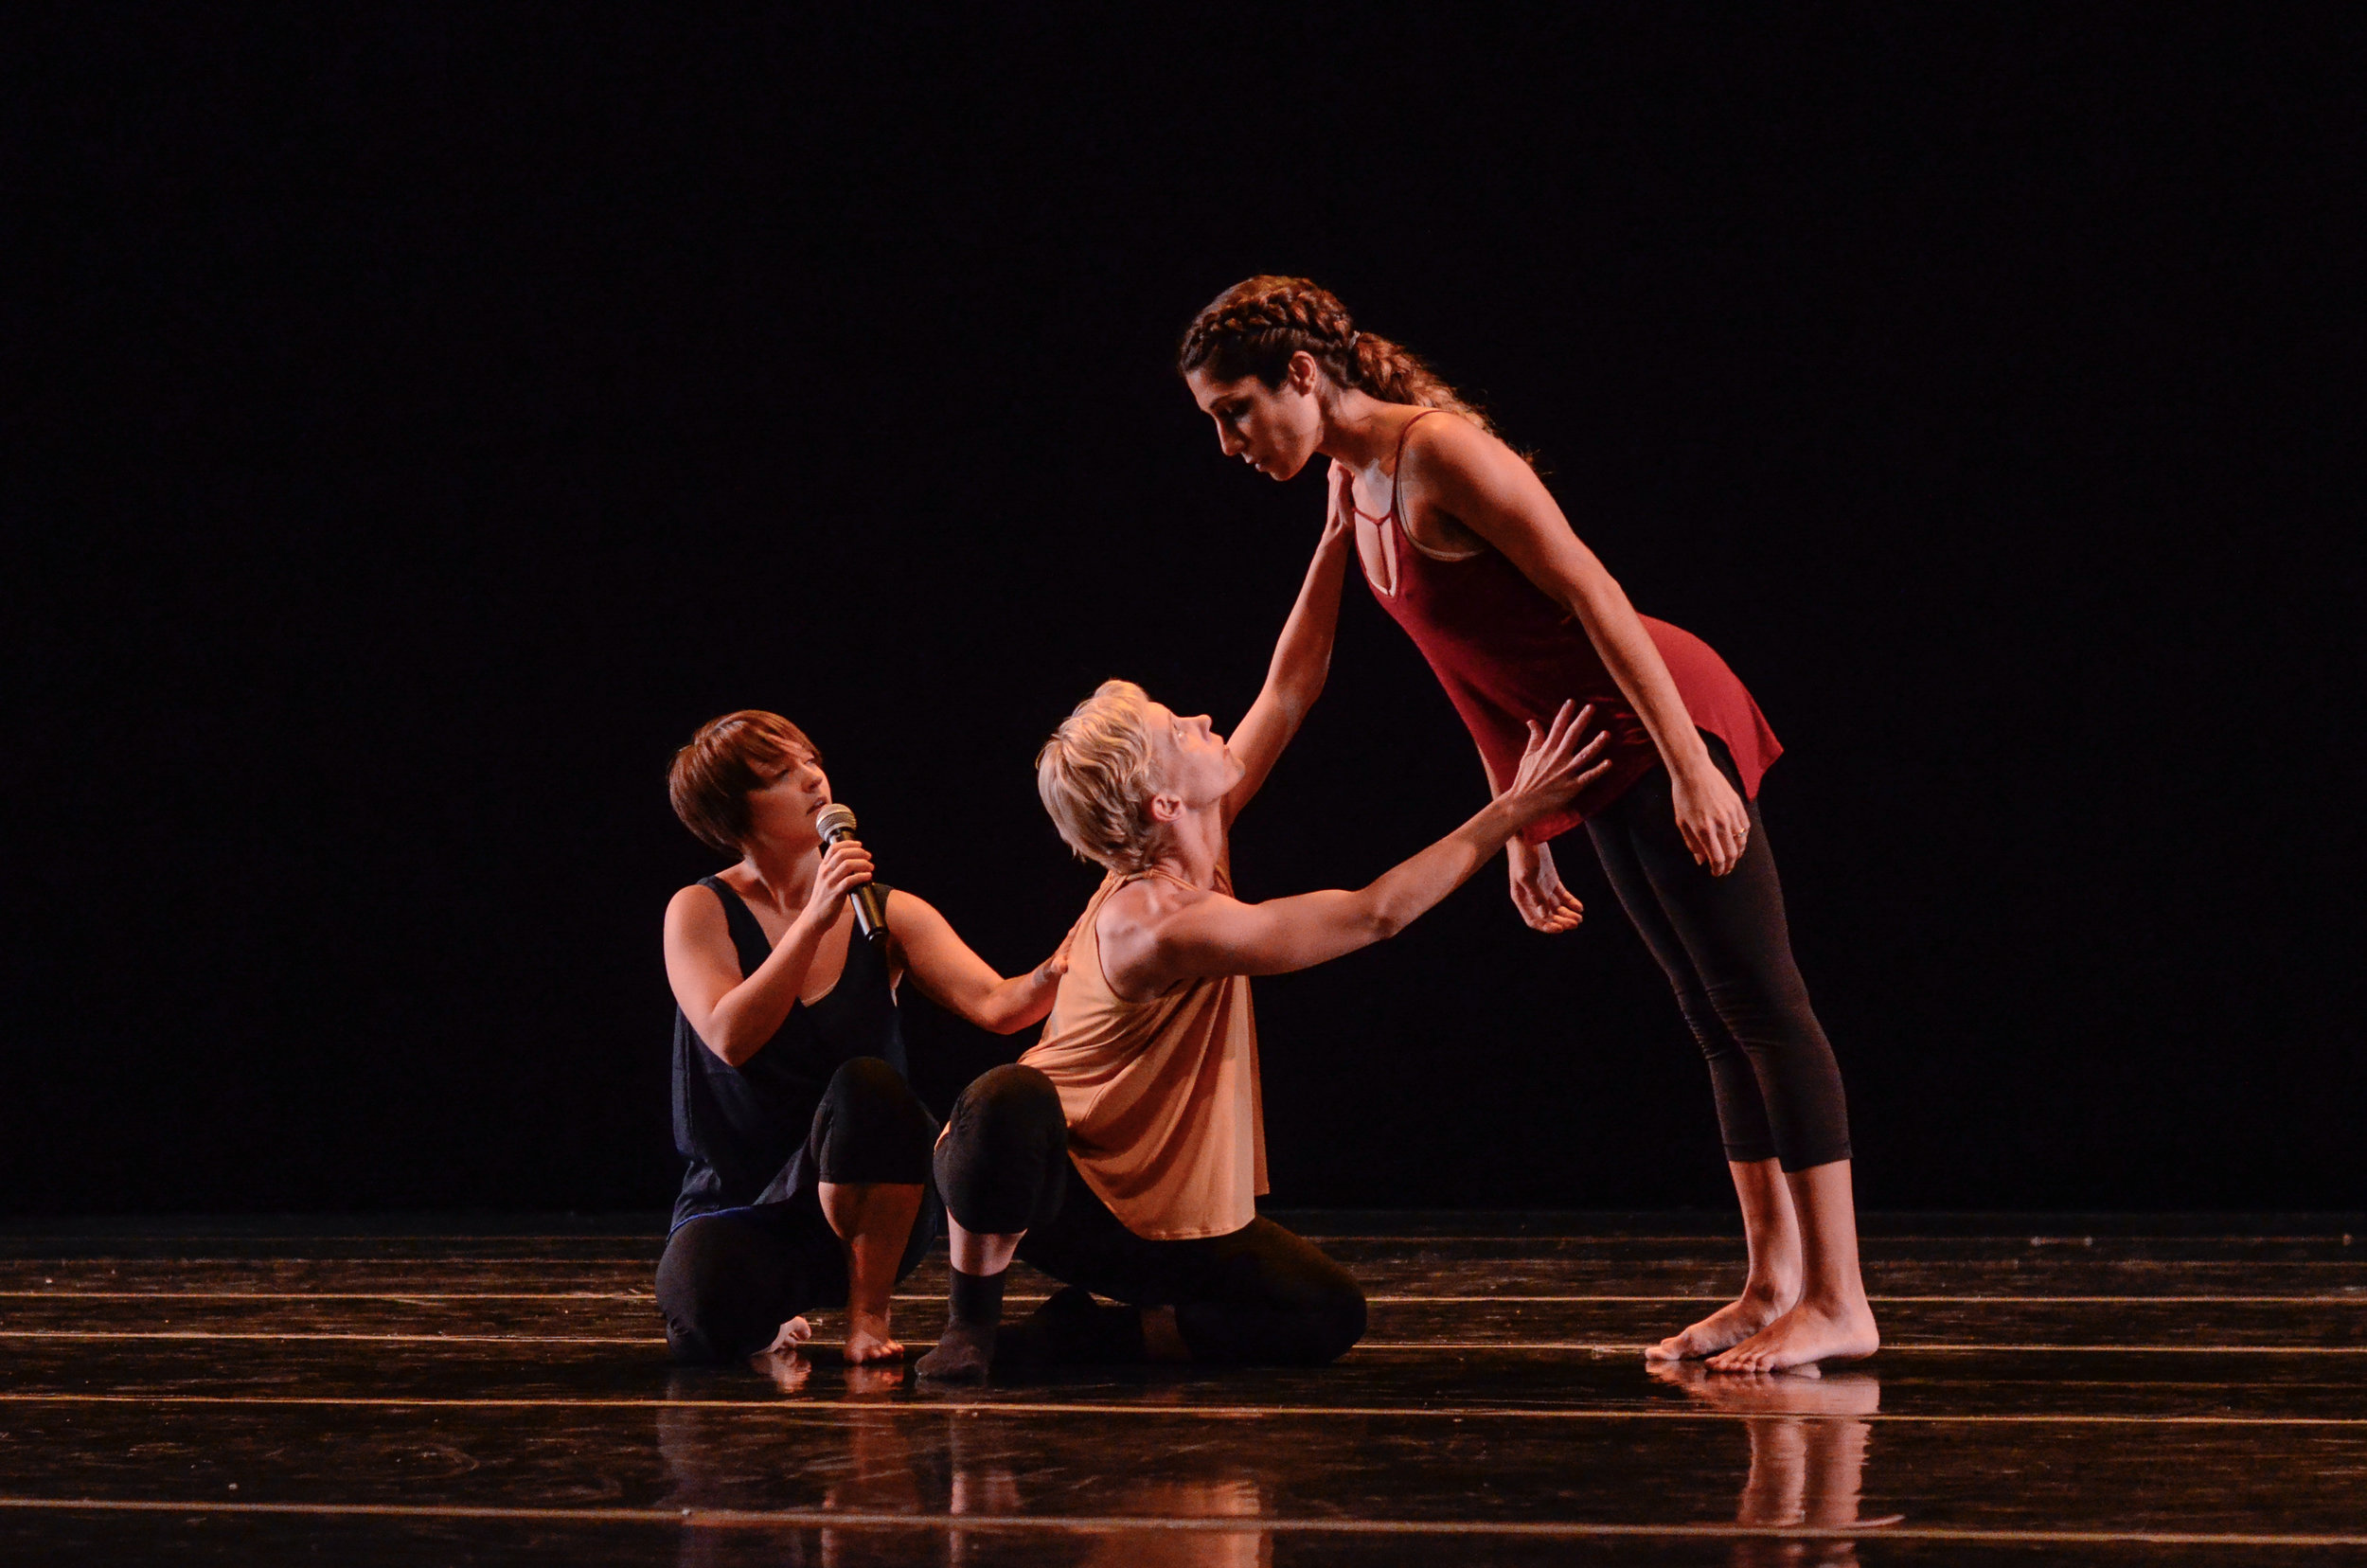 Mother Under - Best of Fest Award winning piece at the Exchange Choreography Festival 2016